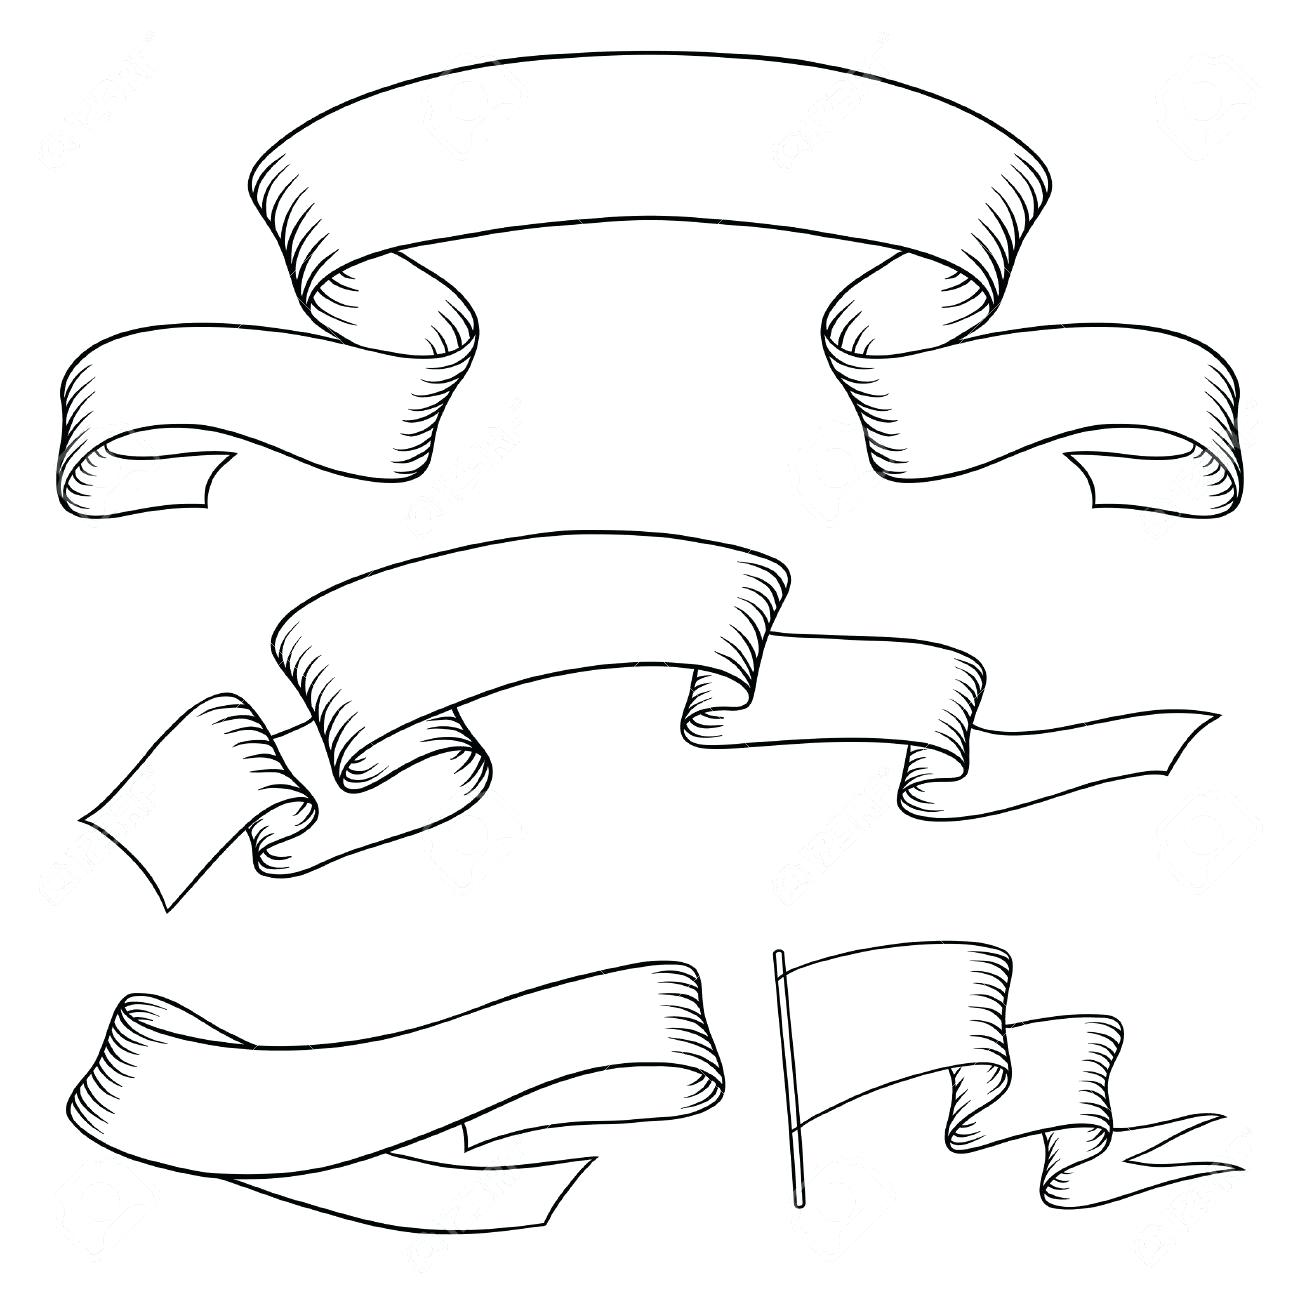 scroll drawing template at getdrawings com free for personal use